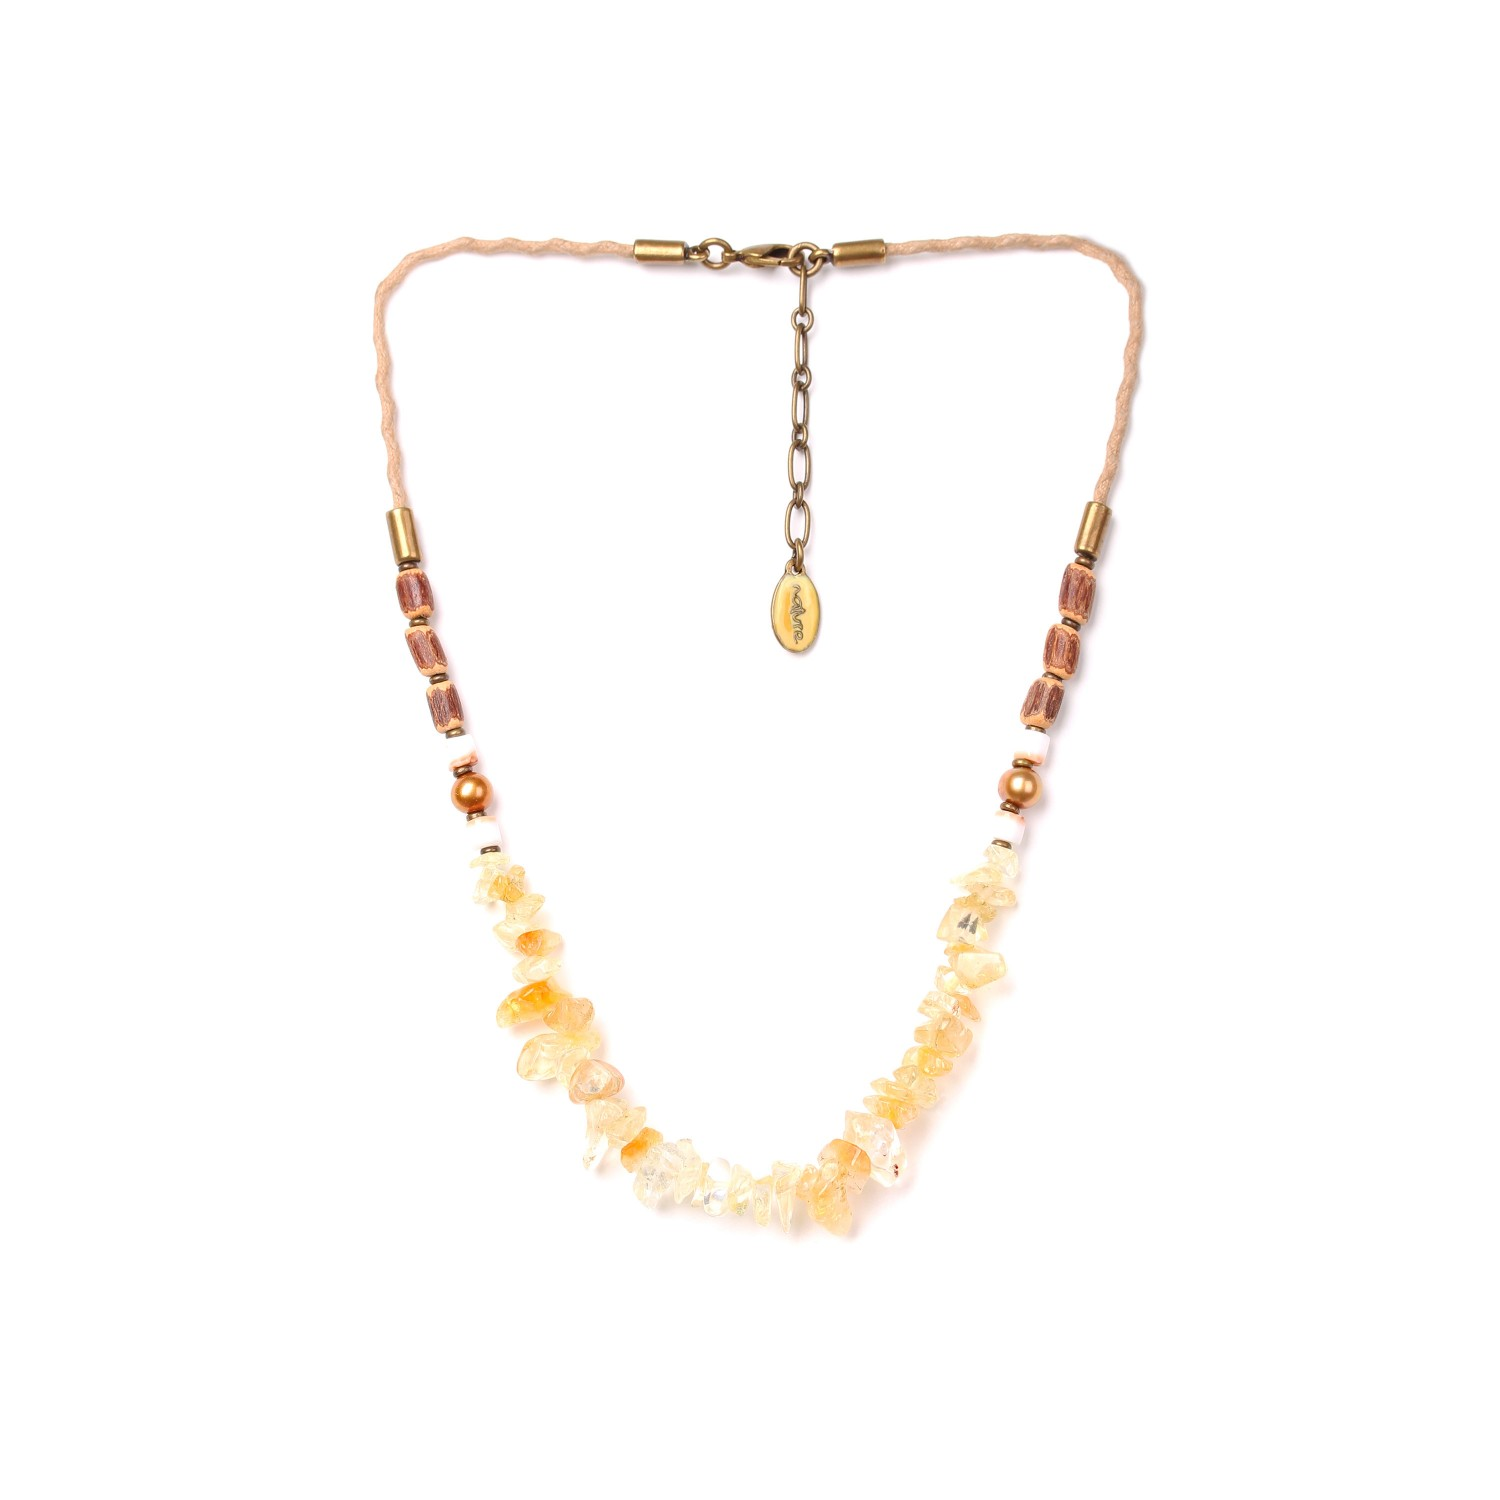 WILDERNESS collier citrine